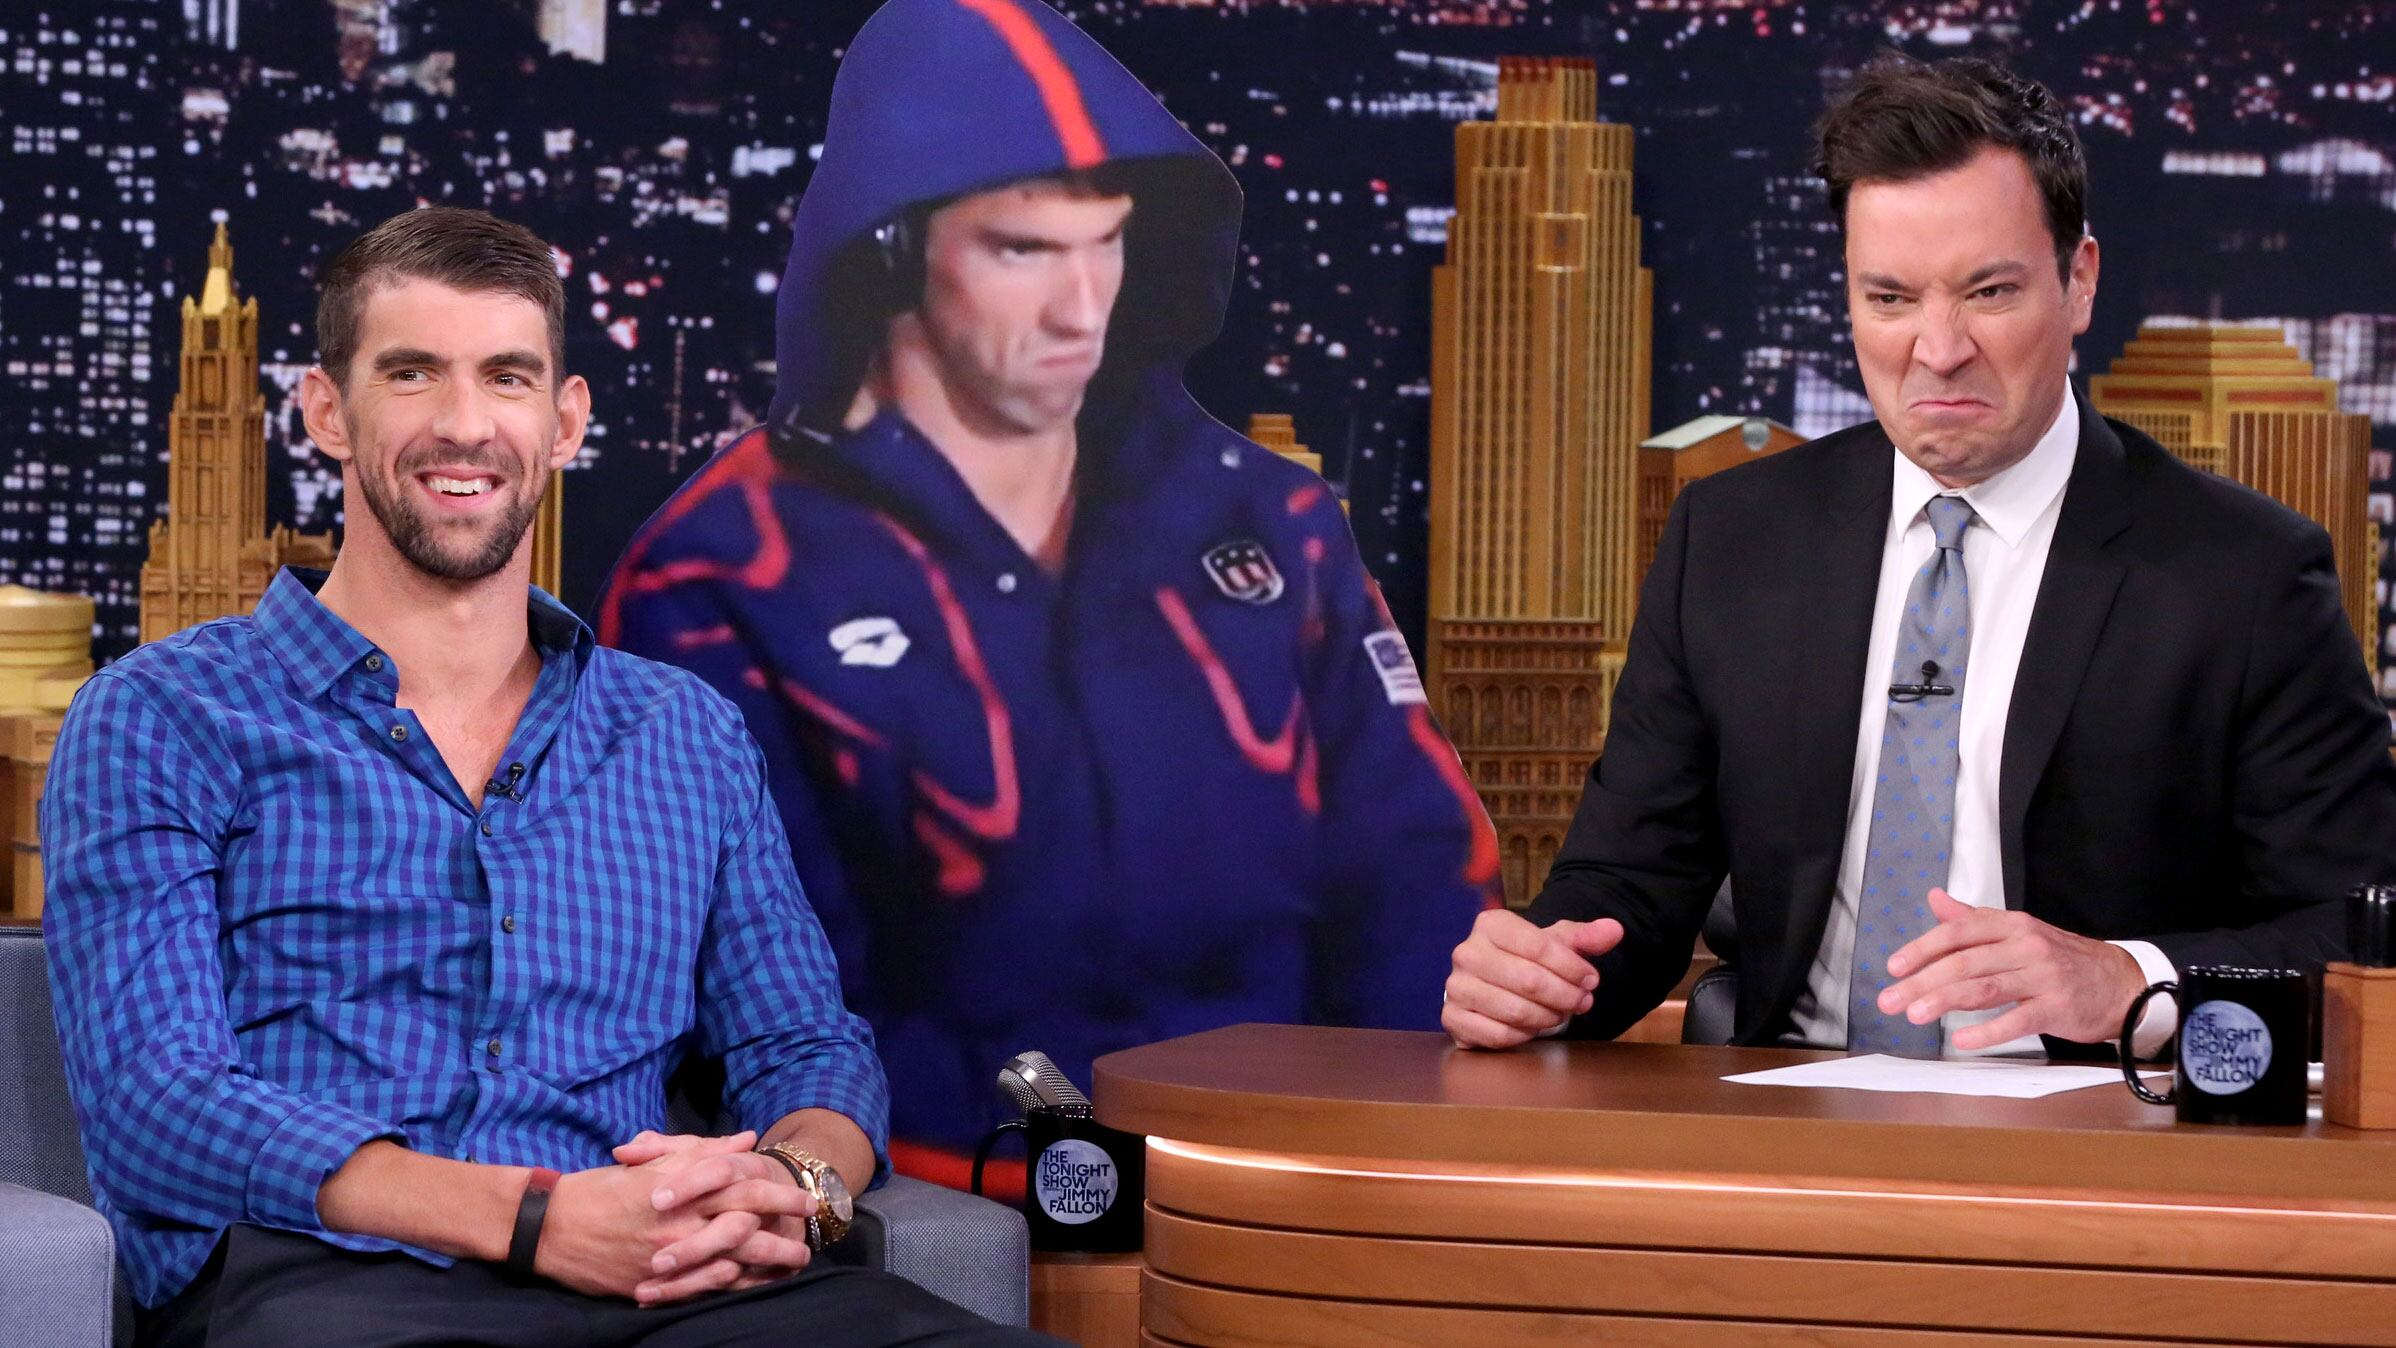 Michael Phelps Gets a Life-Size Cutout of His Angry Olympic Face